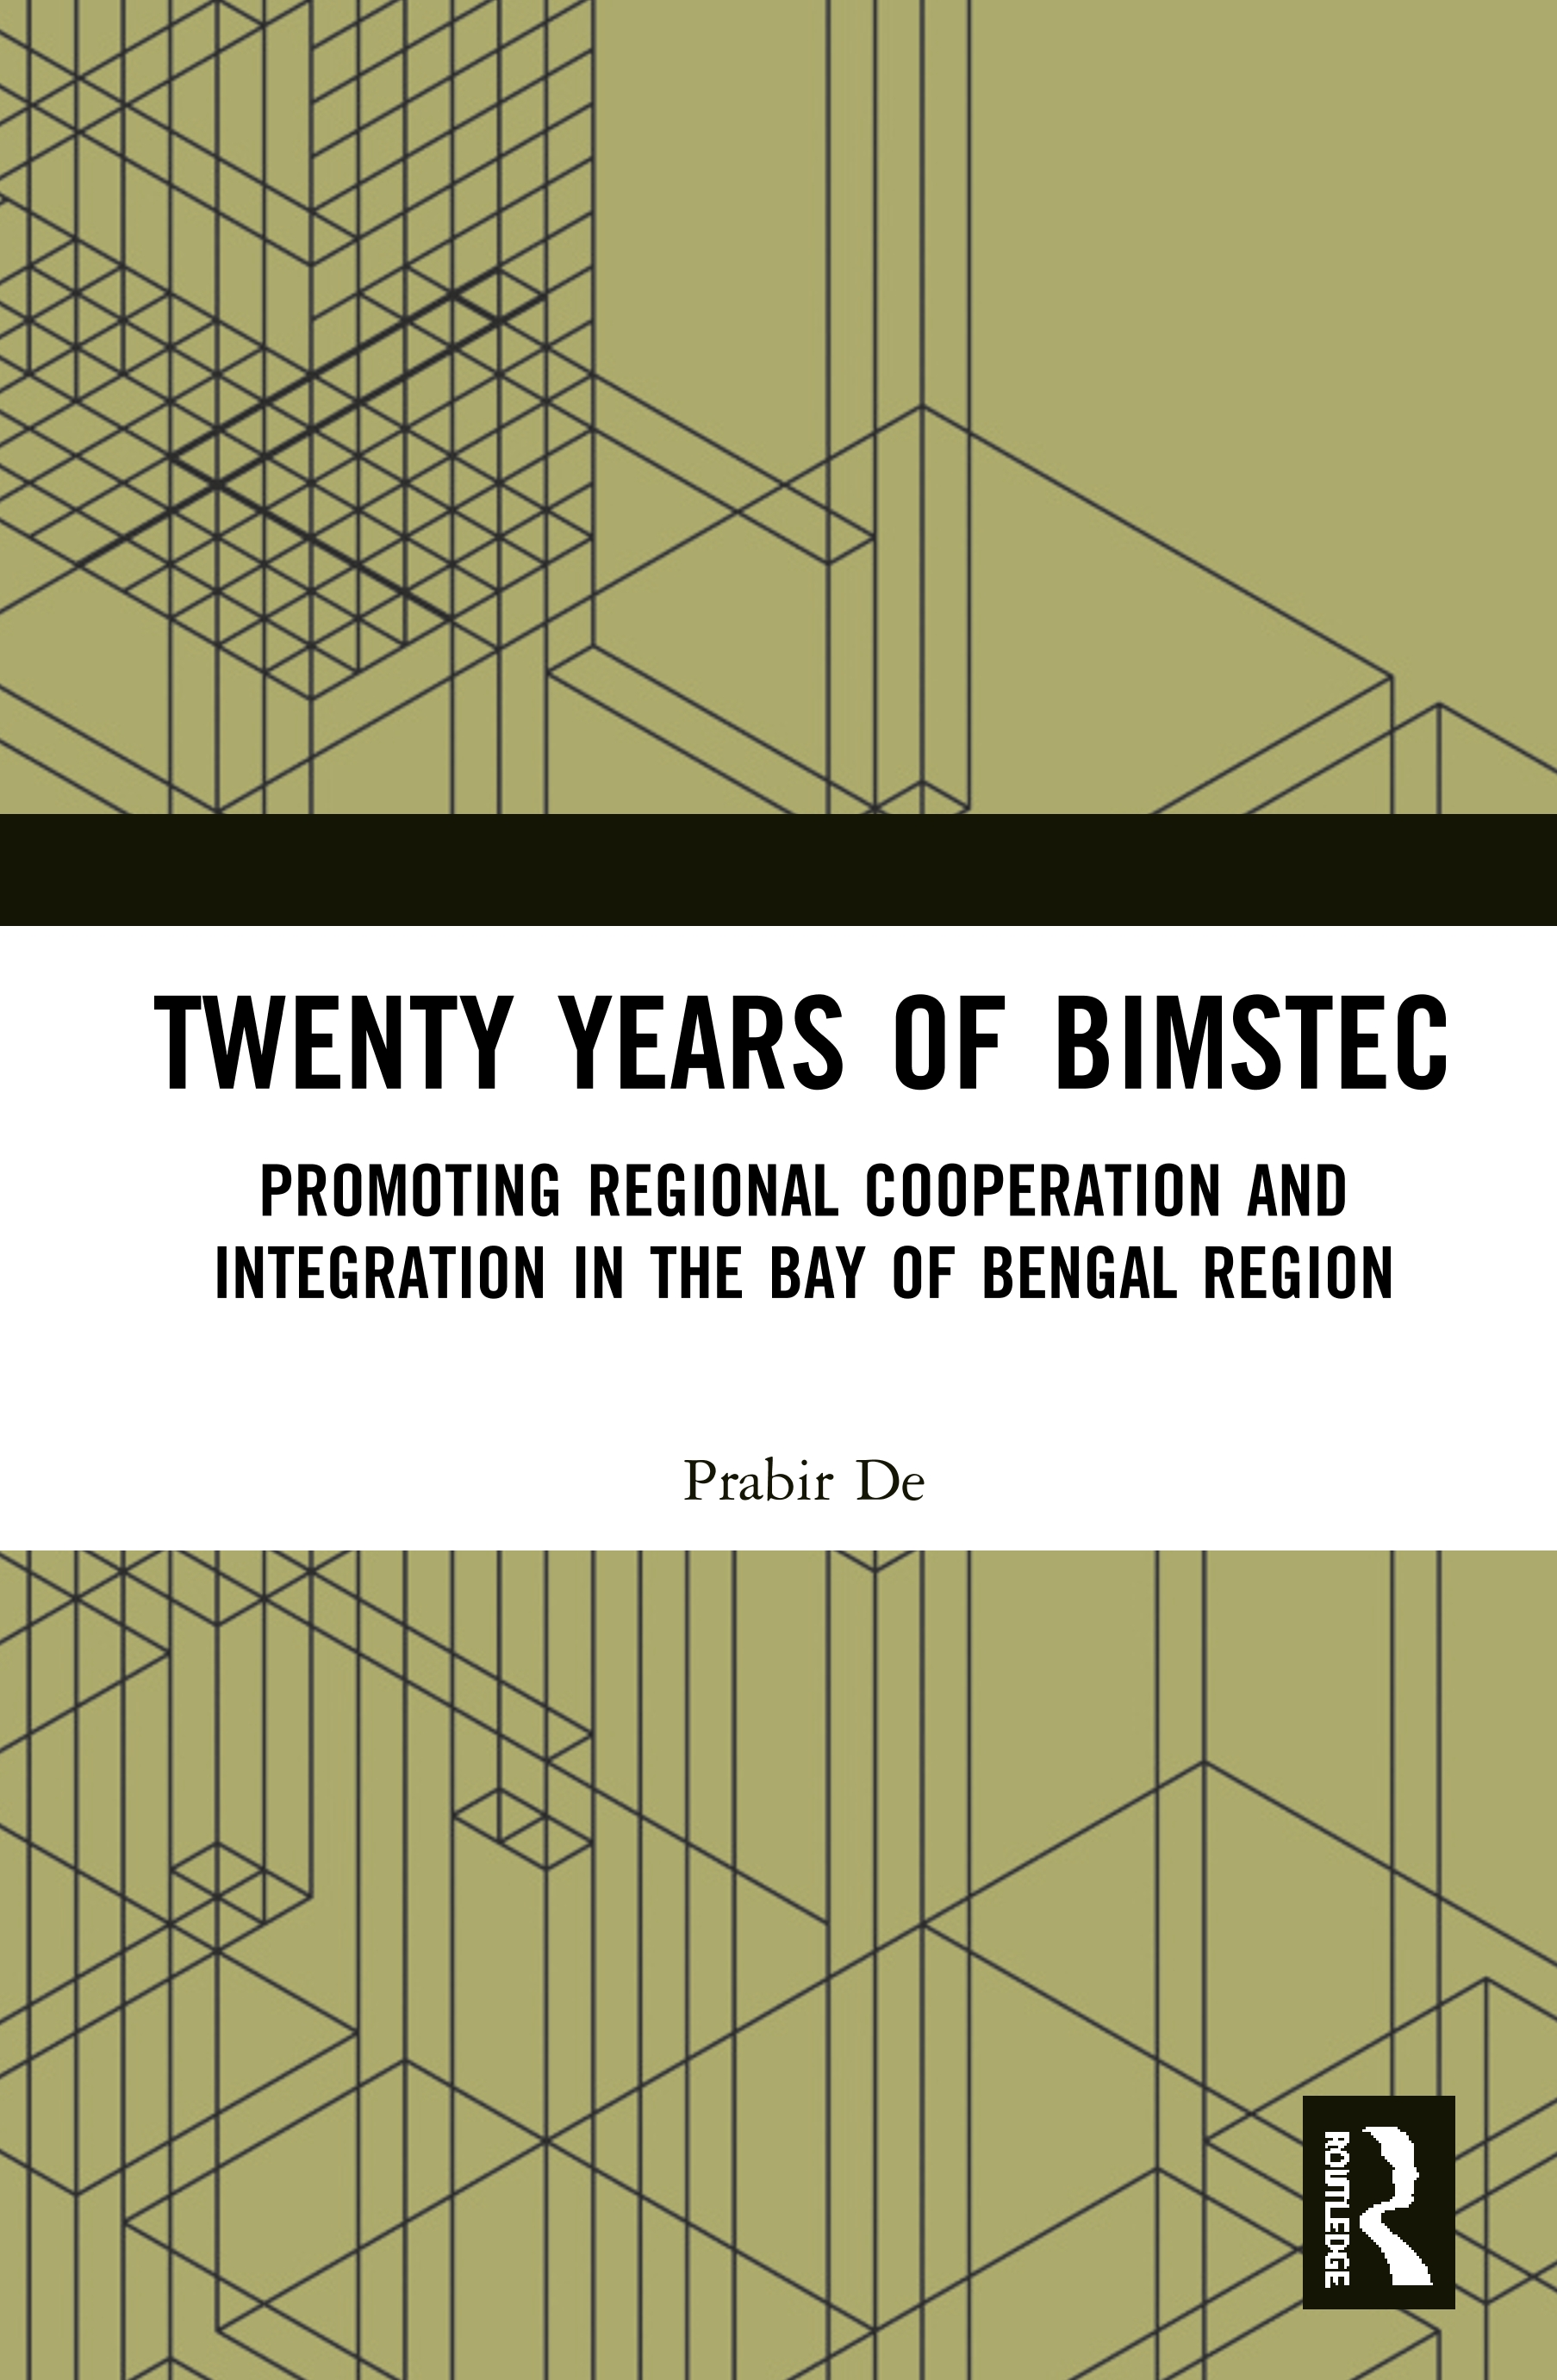 Twenty Years of BIMSTEC: Promoting Regional Cooperation and Integration in the Bay of Bengal Region book cover